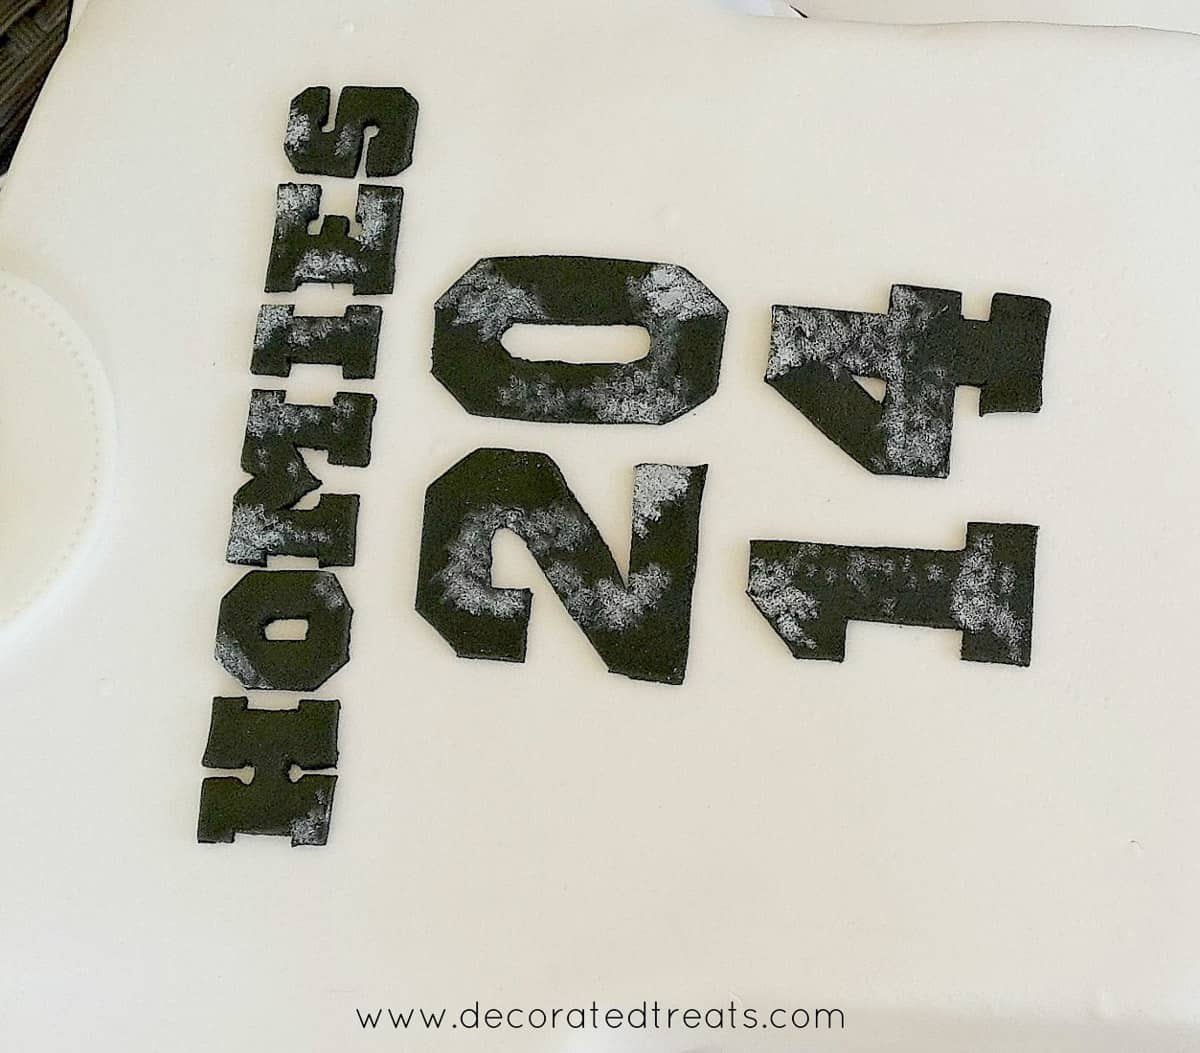 The wordings HOMIES 2014 cut in fondant and placed on a white cake